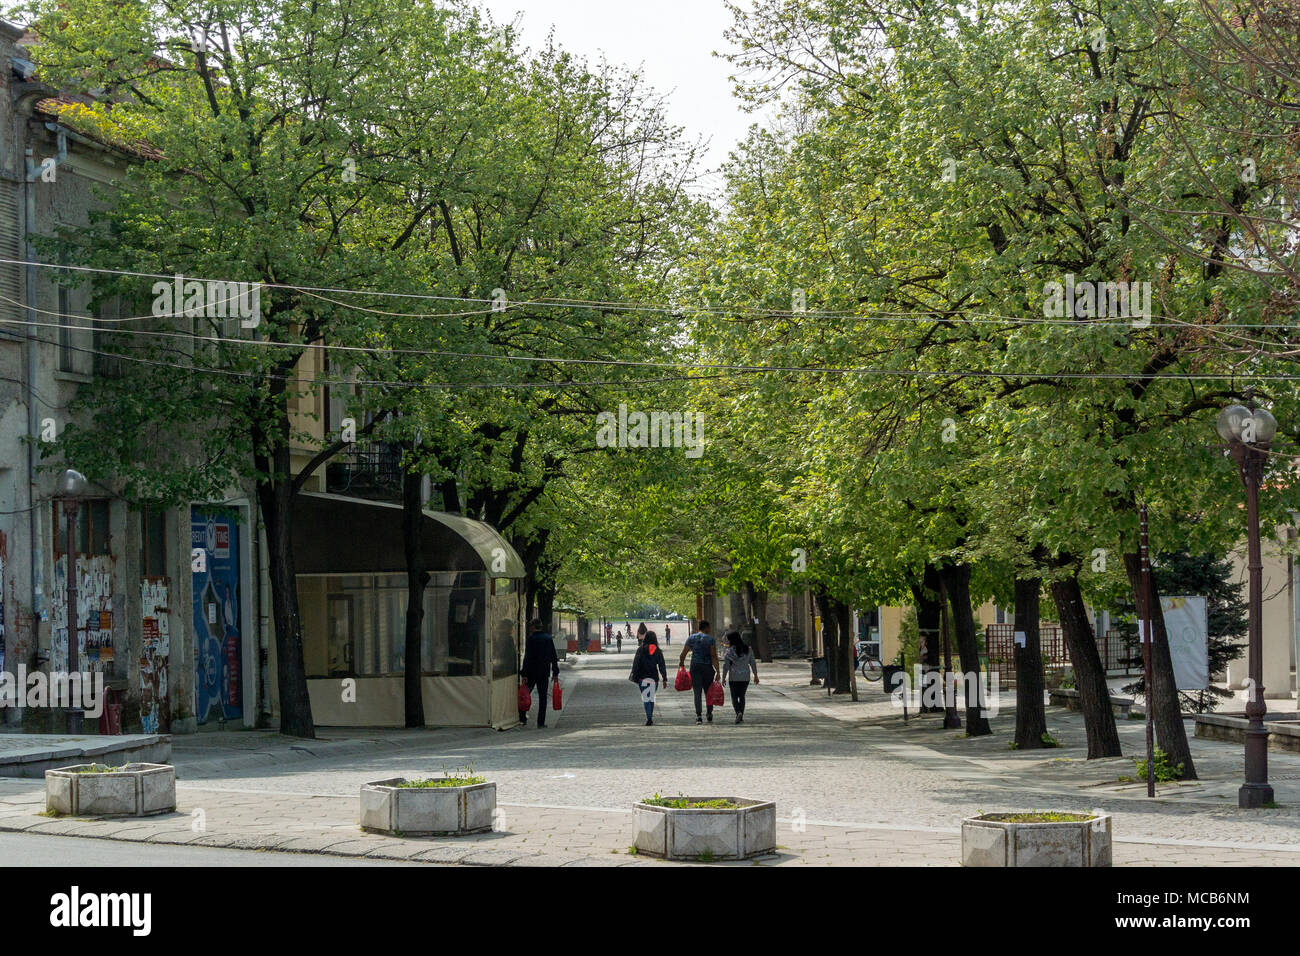 Elhovo Bulgaria 15th April 2017: Quiet sunday afternoon sunshine with a warm breeze and blue sky with white clouds. Clifford Norton Alamy Live News. - Stock Image